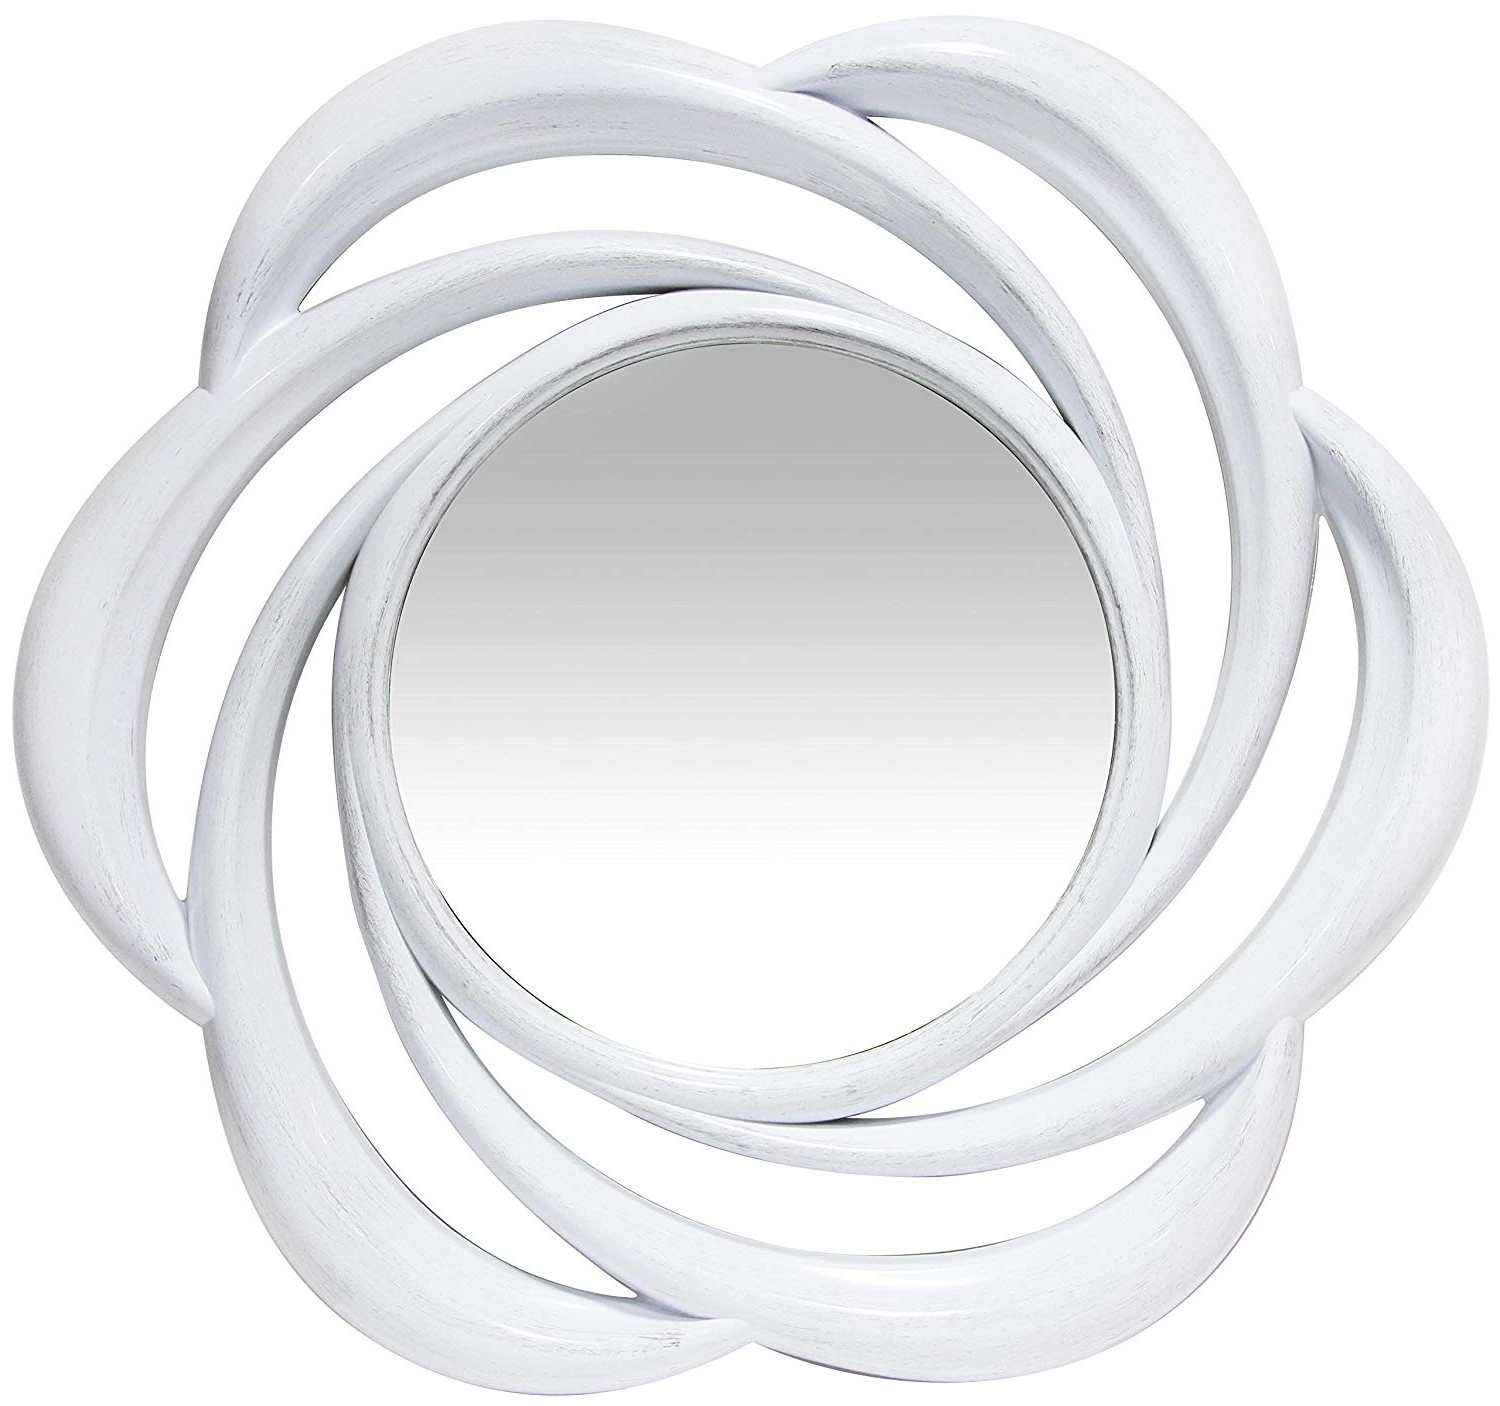 Latest Amazon: Infinity Instruments Whimsical Wall Mirror White Pertaining To Whimsical Wall Mirrors (Gallery 6 of 20)